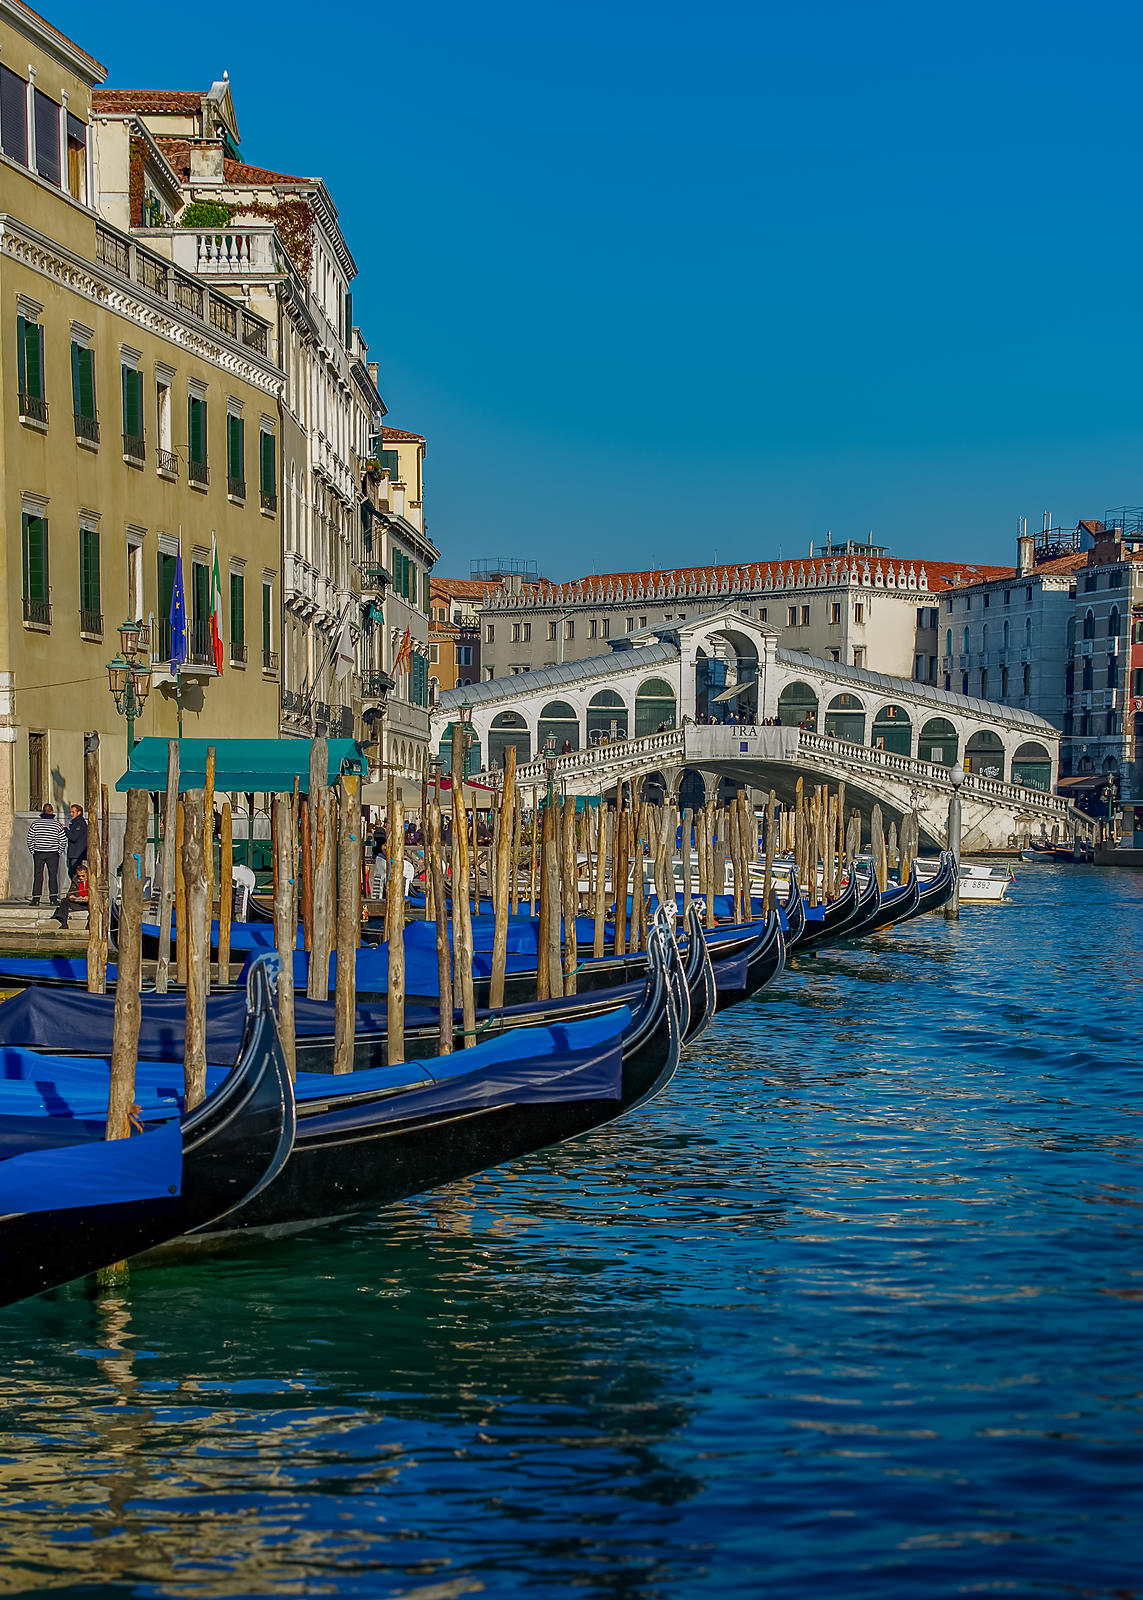 Gondolas Moored on the Grand Canal with the Rialto Bridge in the Backround, Venice